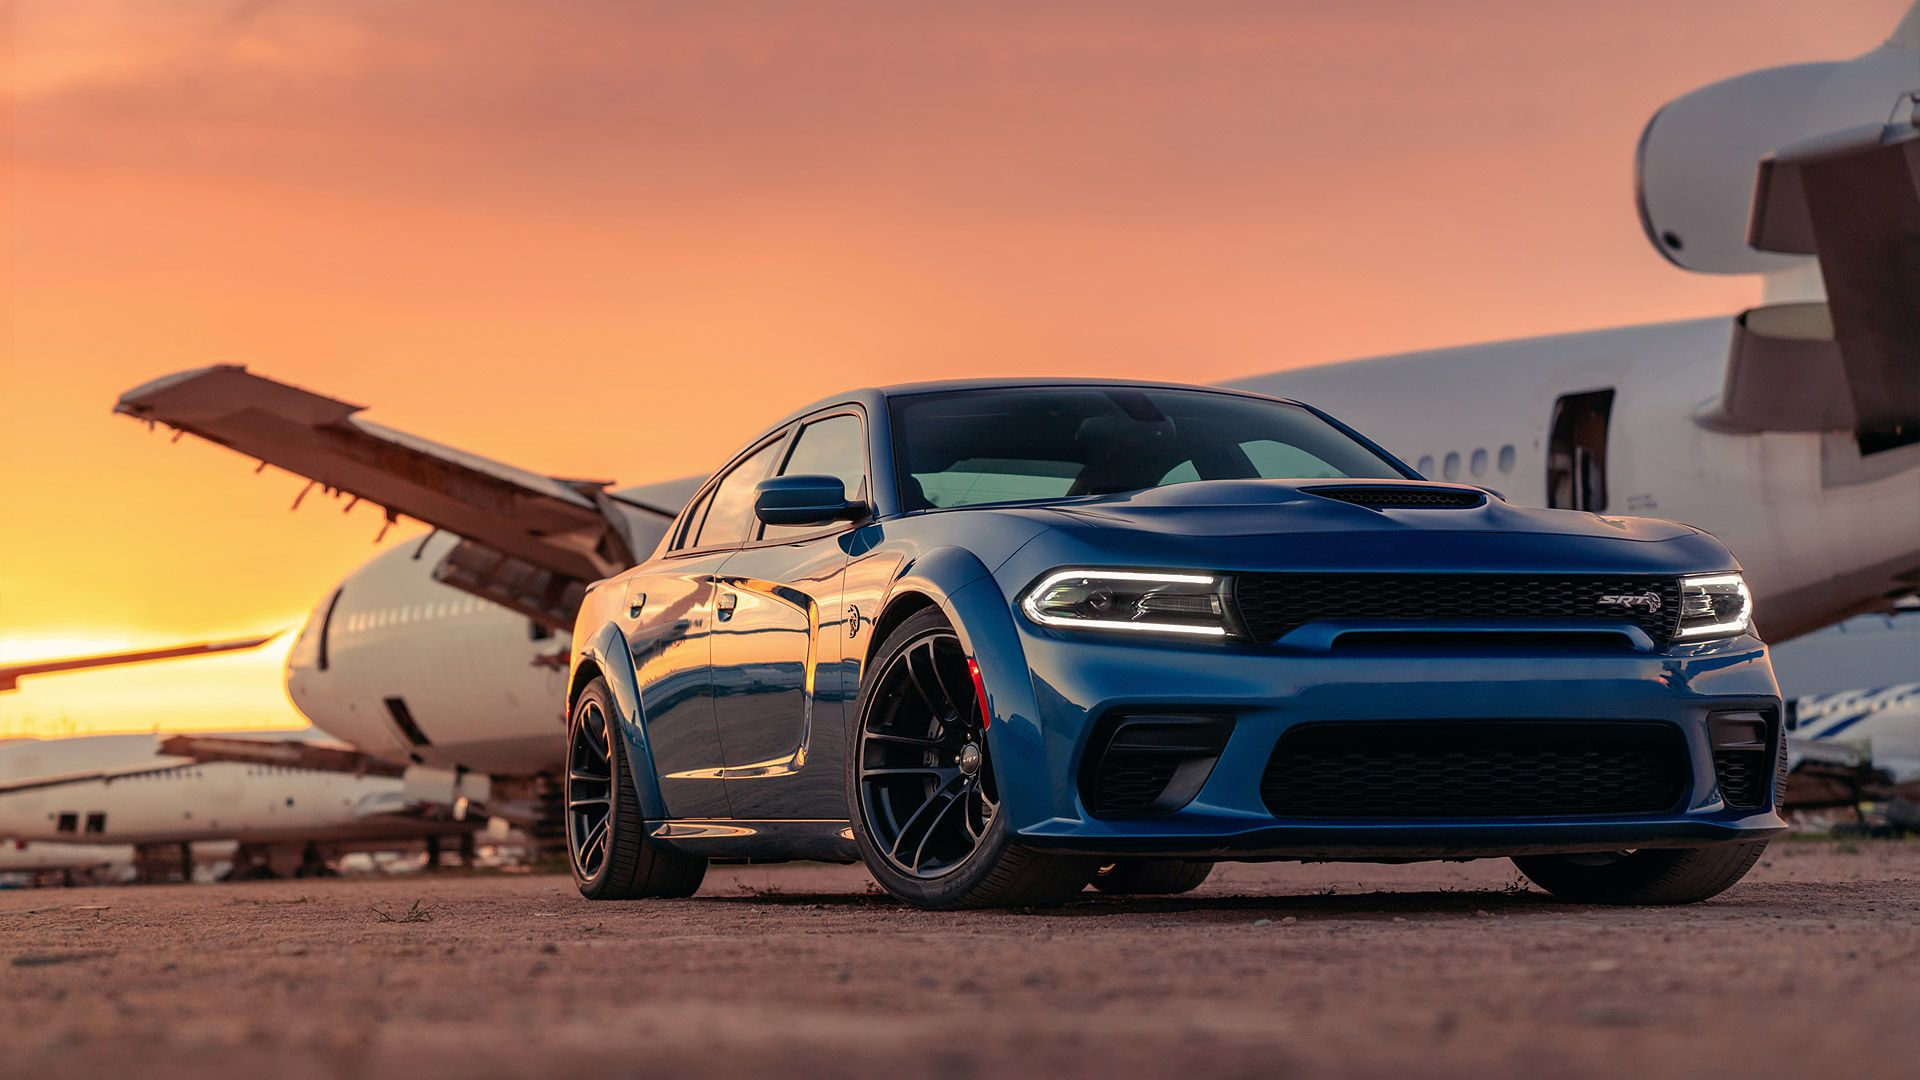 2020 Dodge Charger Srt Hellcat Widebody Dodge Charger Srt Charger Srt Hellcat Charger Srt